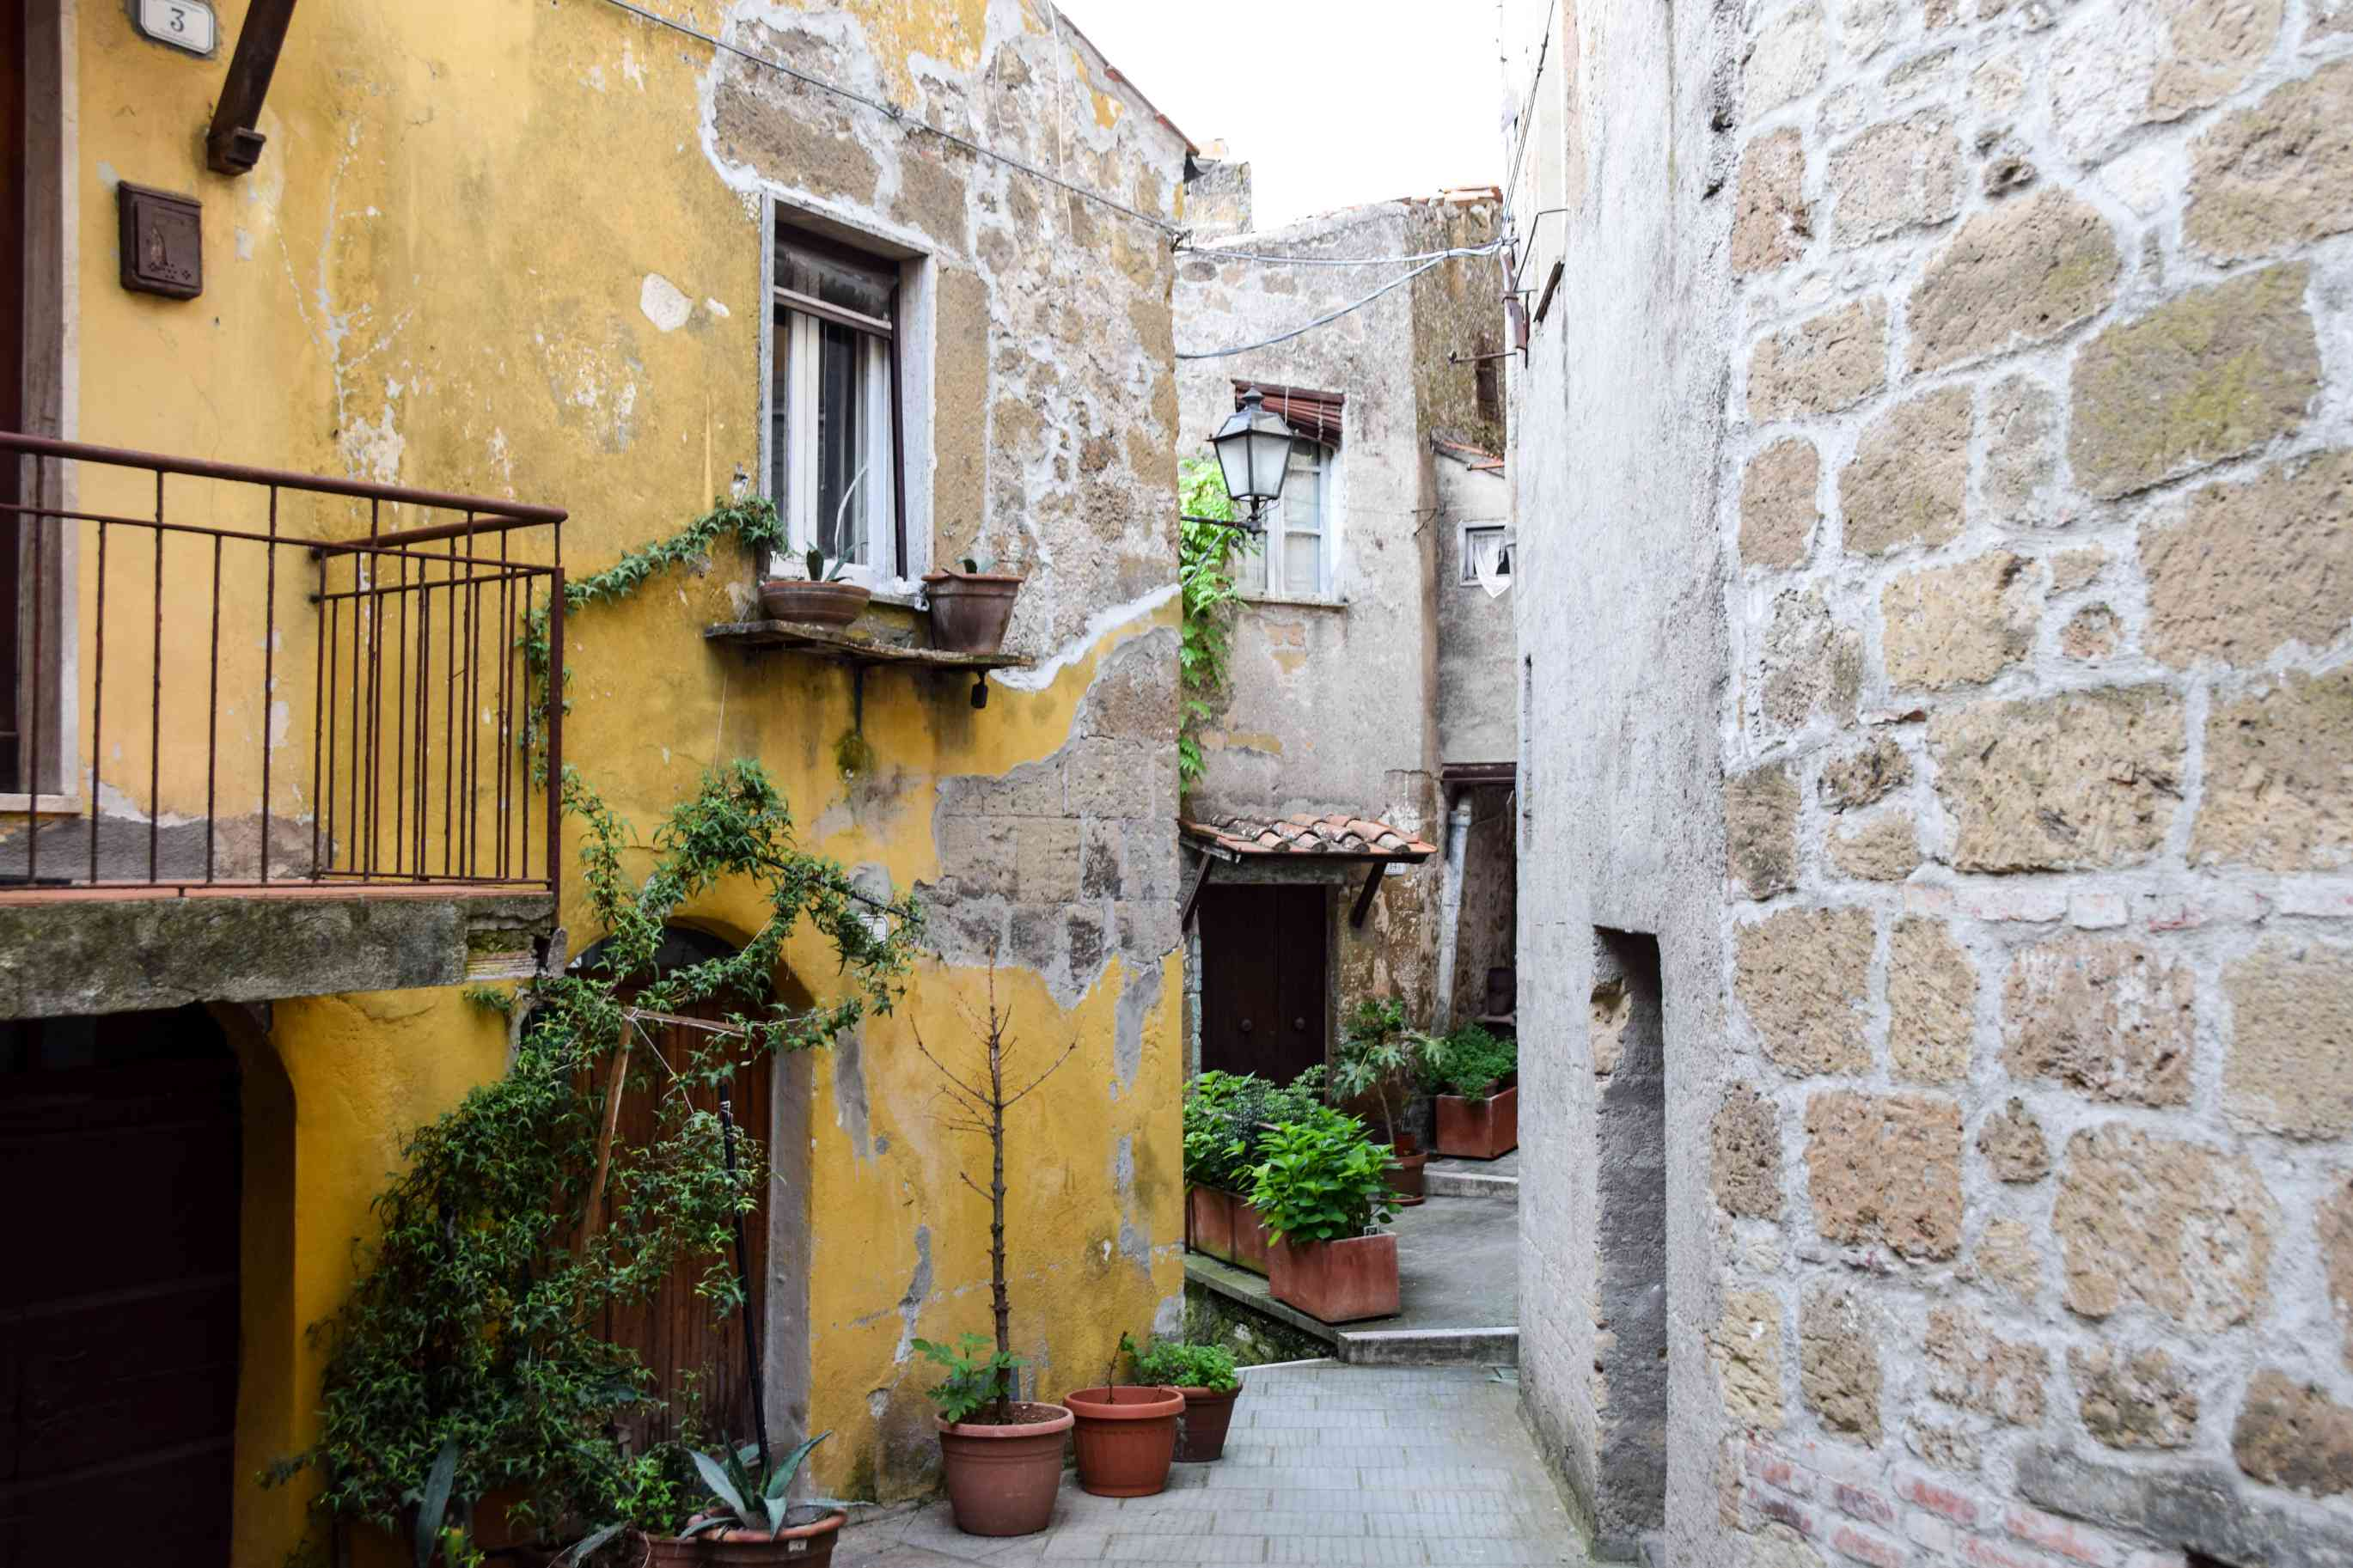 A small alleyway with ancient walls in Pitigliano